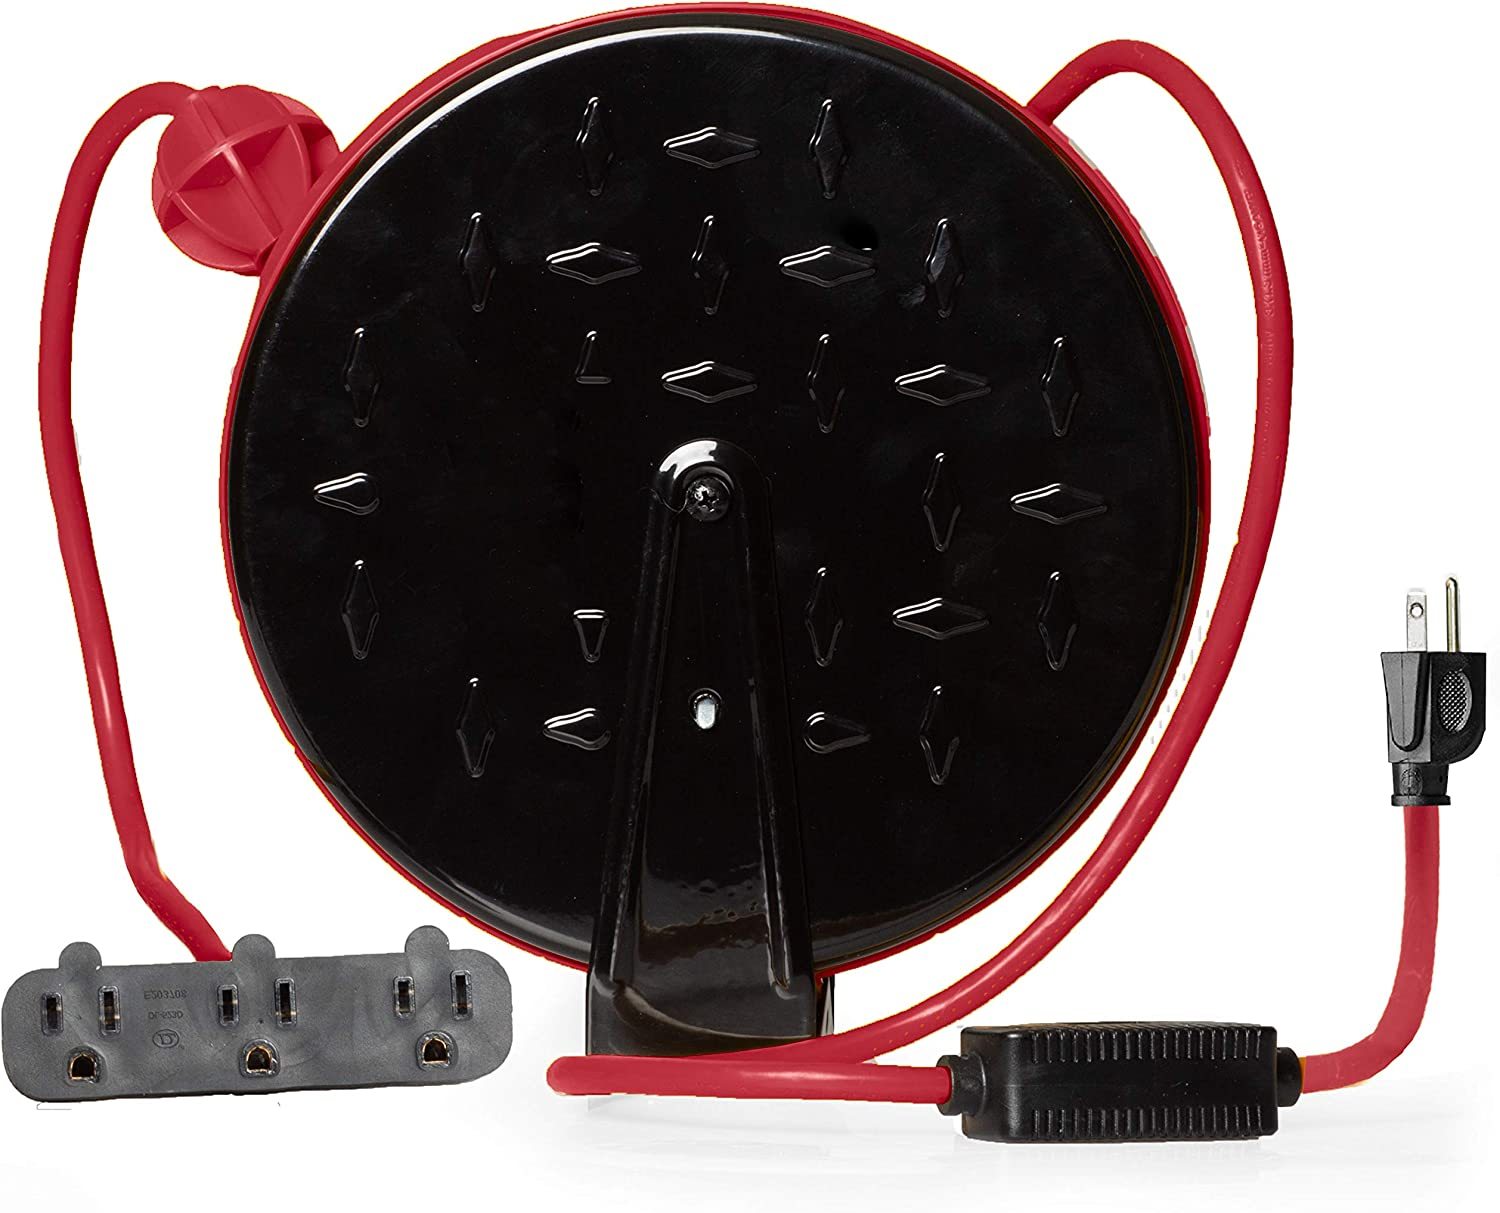 30Ft Retractable Extension Cord Reel with Breaker Switch & 3 Electrical Power Outlets - 16/3 SJTW Durable Red Cable - Perfect for Hanging from Your Garage Ceiling